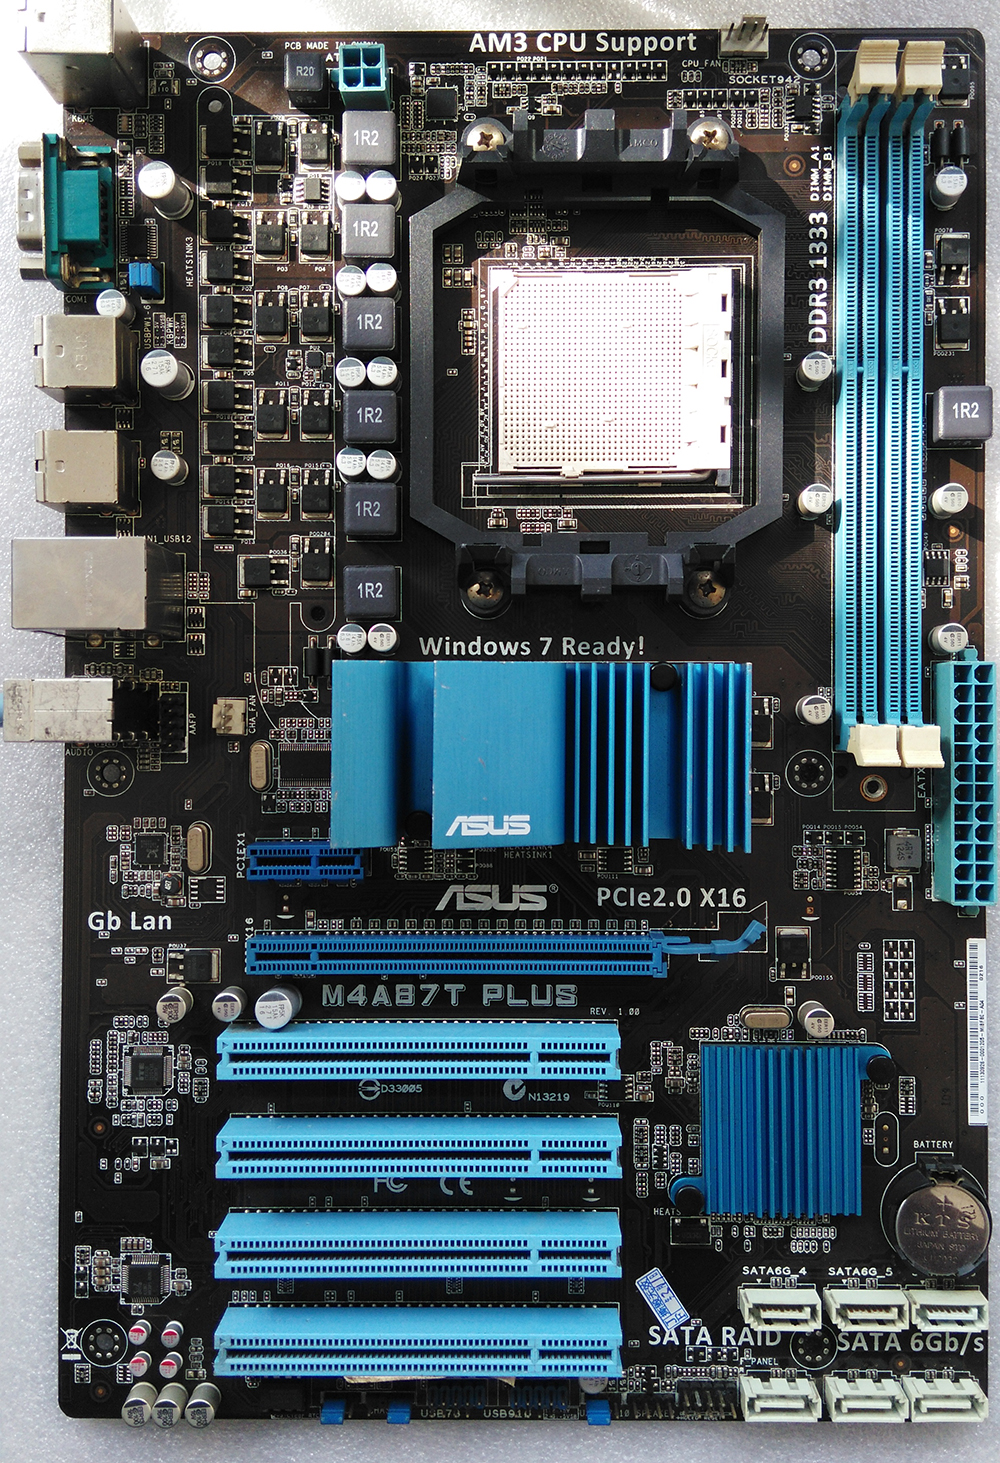 Used,for Asus M4A87T PLUS Original Desktop Motherboard 870 Socket AM3 DDR3 SATA3 USB2.0 free shipping original motherboard for asus f1a55 v plus socket fm1 ddr3 boards a55 desktop motherboard